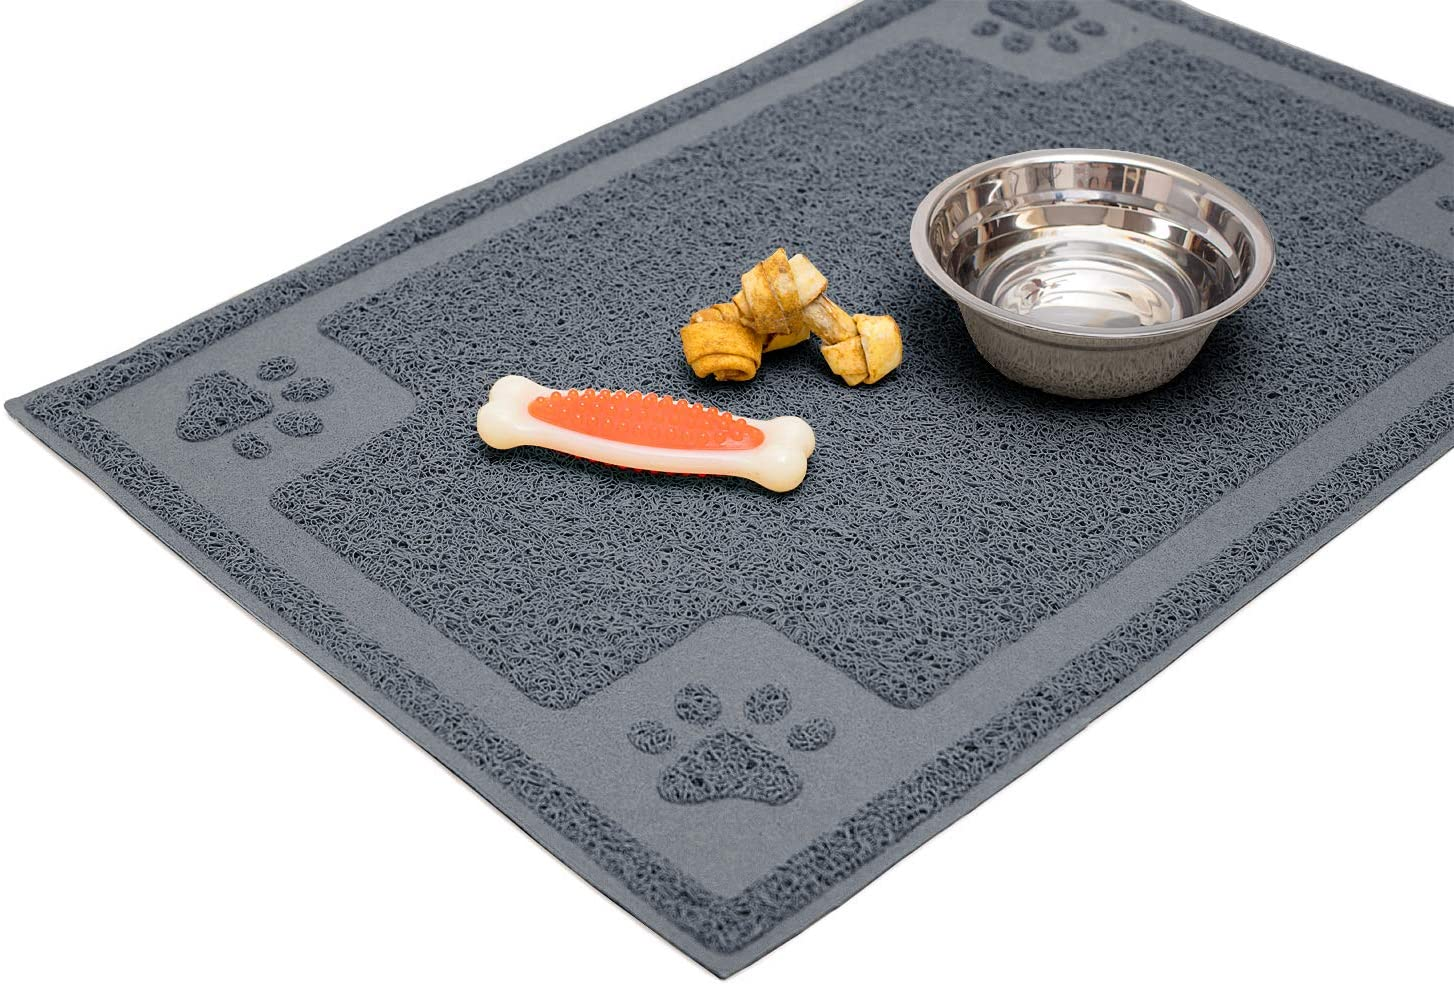 Cavalier Pets, Dog Bowl Mat for Cat and Dog Bowls, Silicone Non-Slip Absorbent Waterproof Dog Food Mat, Easy to Clean, Unique Paw Design